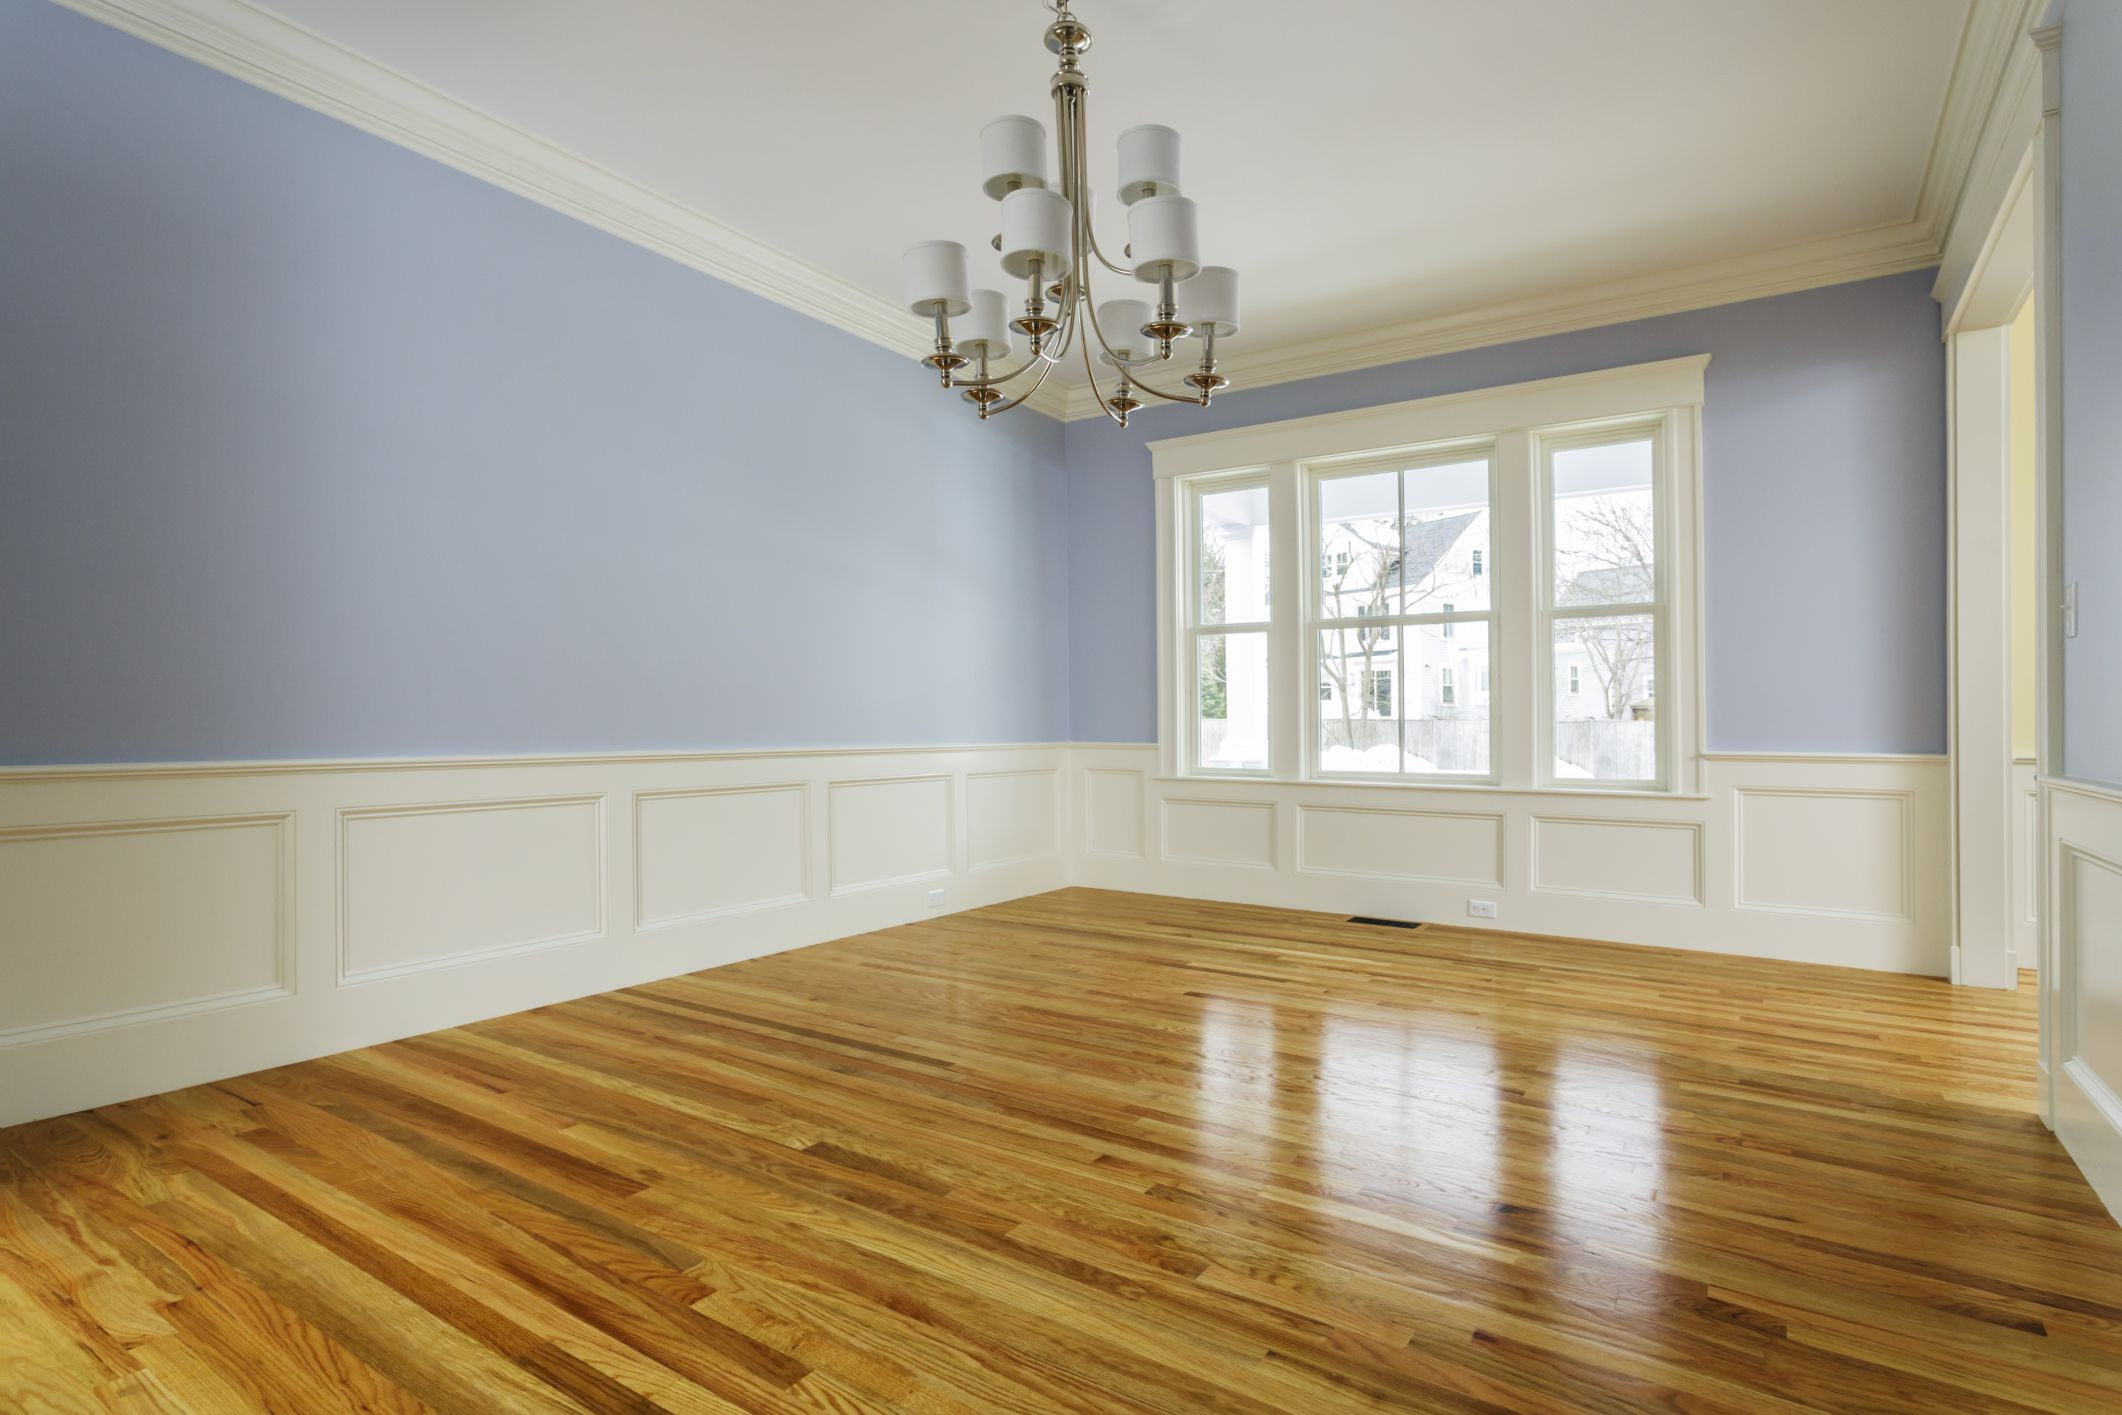 Hardwood Floor Cleaner that Doesn T Leave Residue Of How to Make Hardwood Floors Shiny for 168686572 56a4e87c3df78cf7728544a2